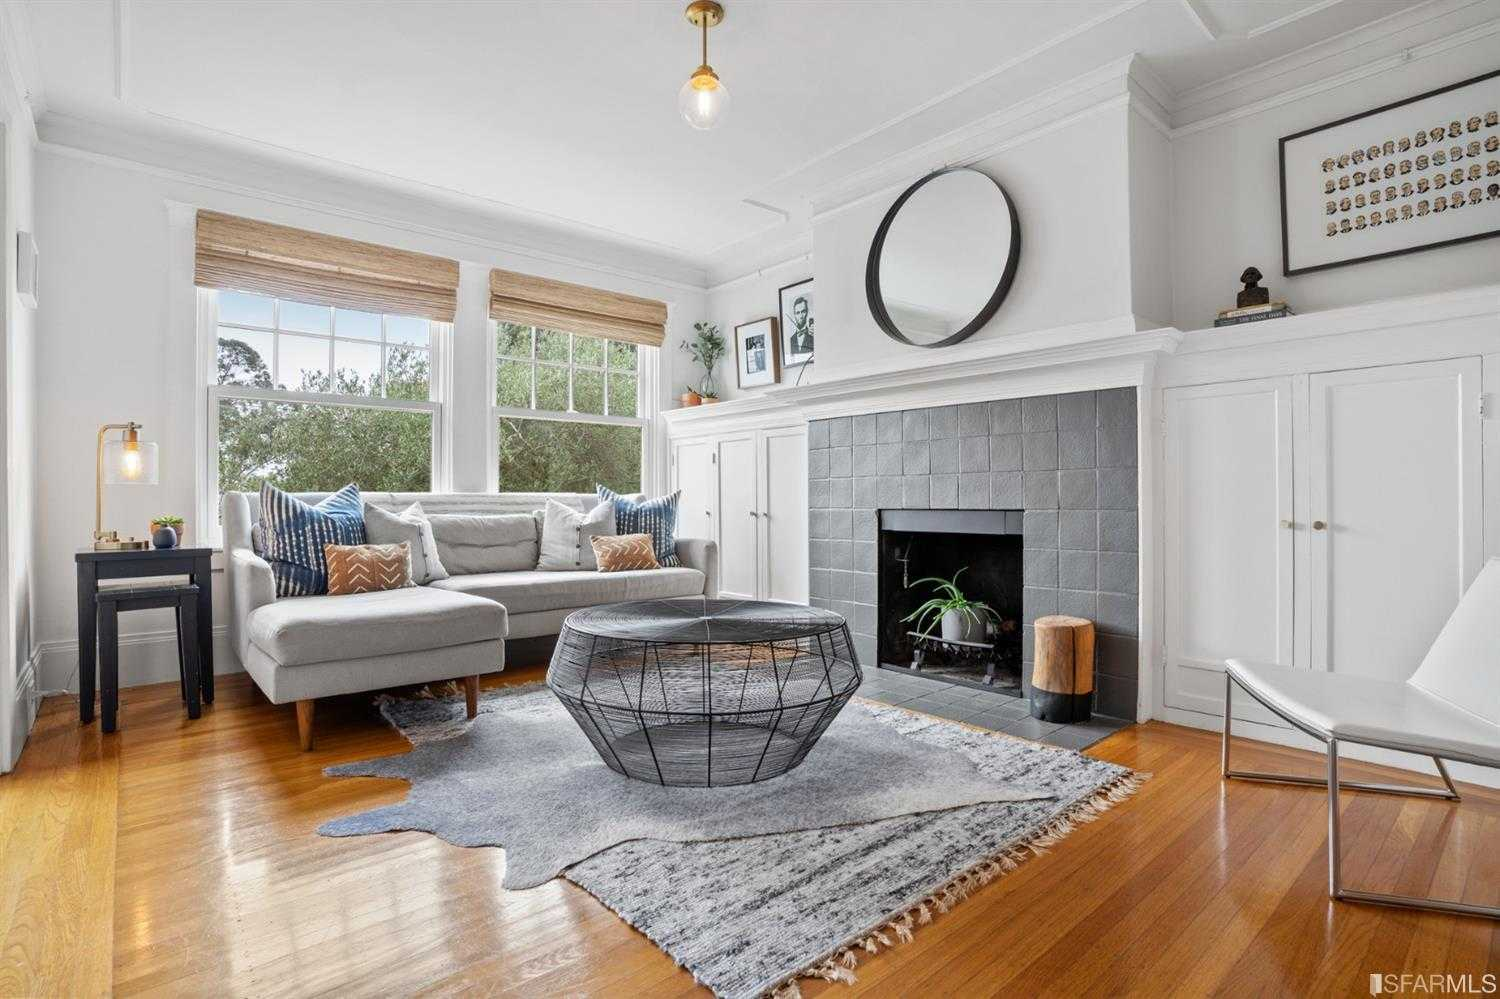 $1,345,000 - 2Br/2Ba -  for Sale in San Francisco